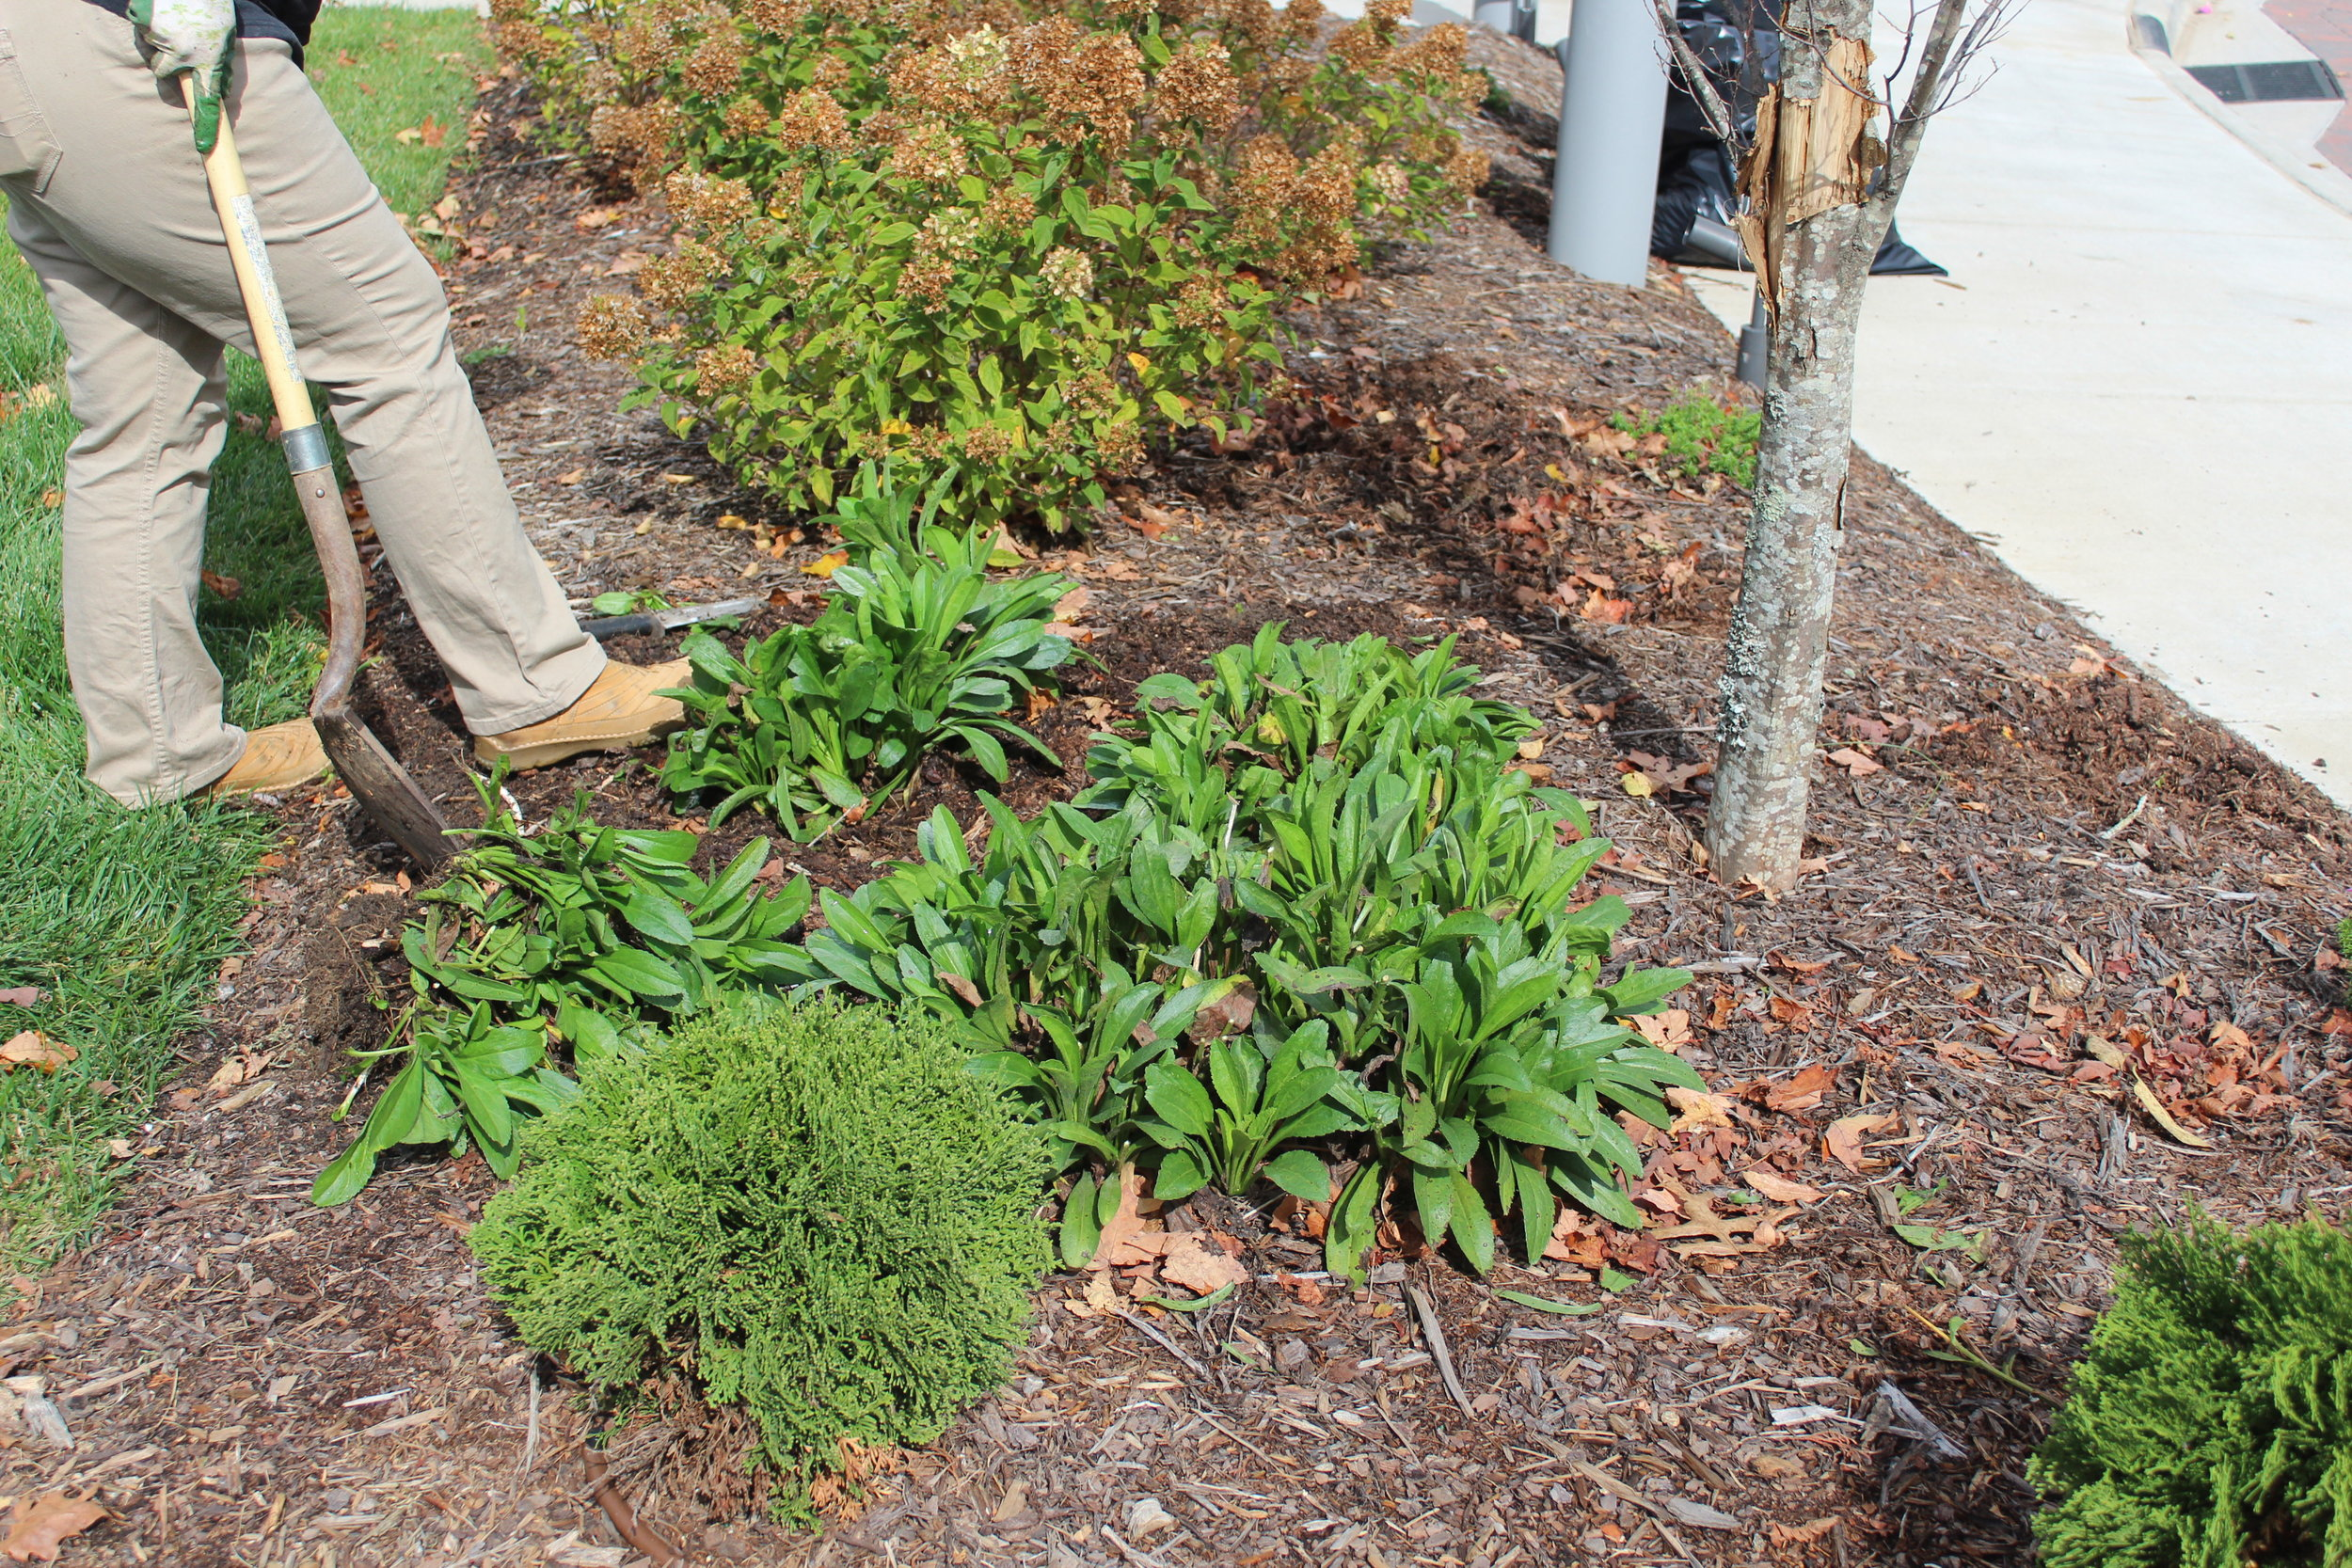 Replant divisions. - Dig holes about a foot deep and wide, and add amendments: 30% amendment to 70% native soil. Daisies will flop with too much fertilizer or enhanced soil. They prefer native soils. Then back-fill, water, and continue to water until plants have gone completely dormant.